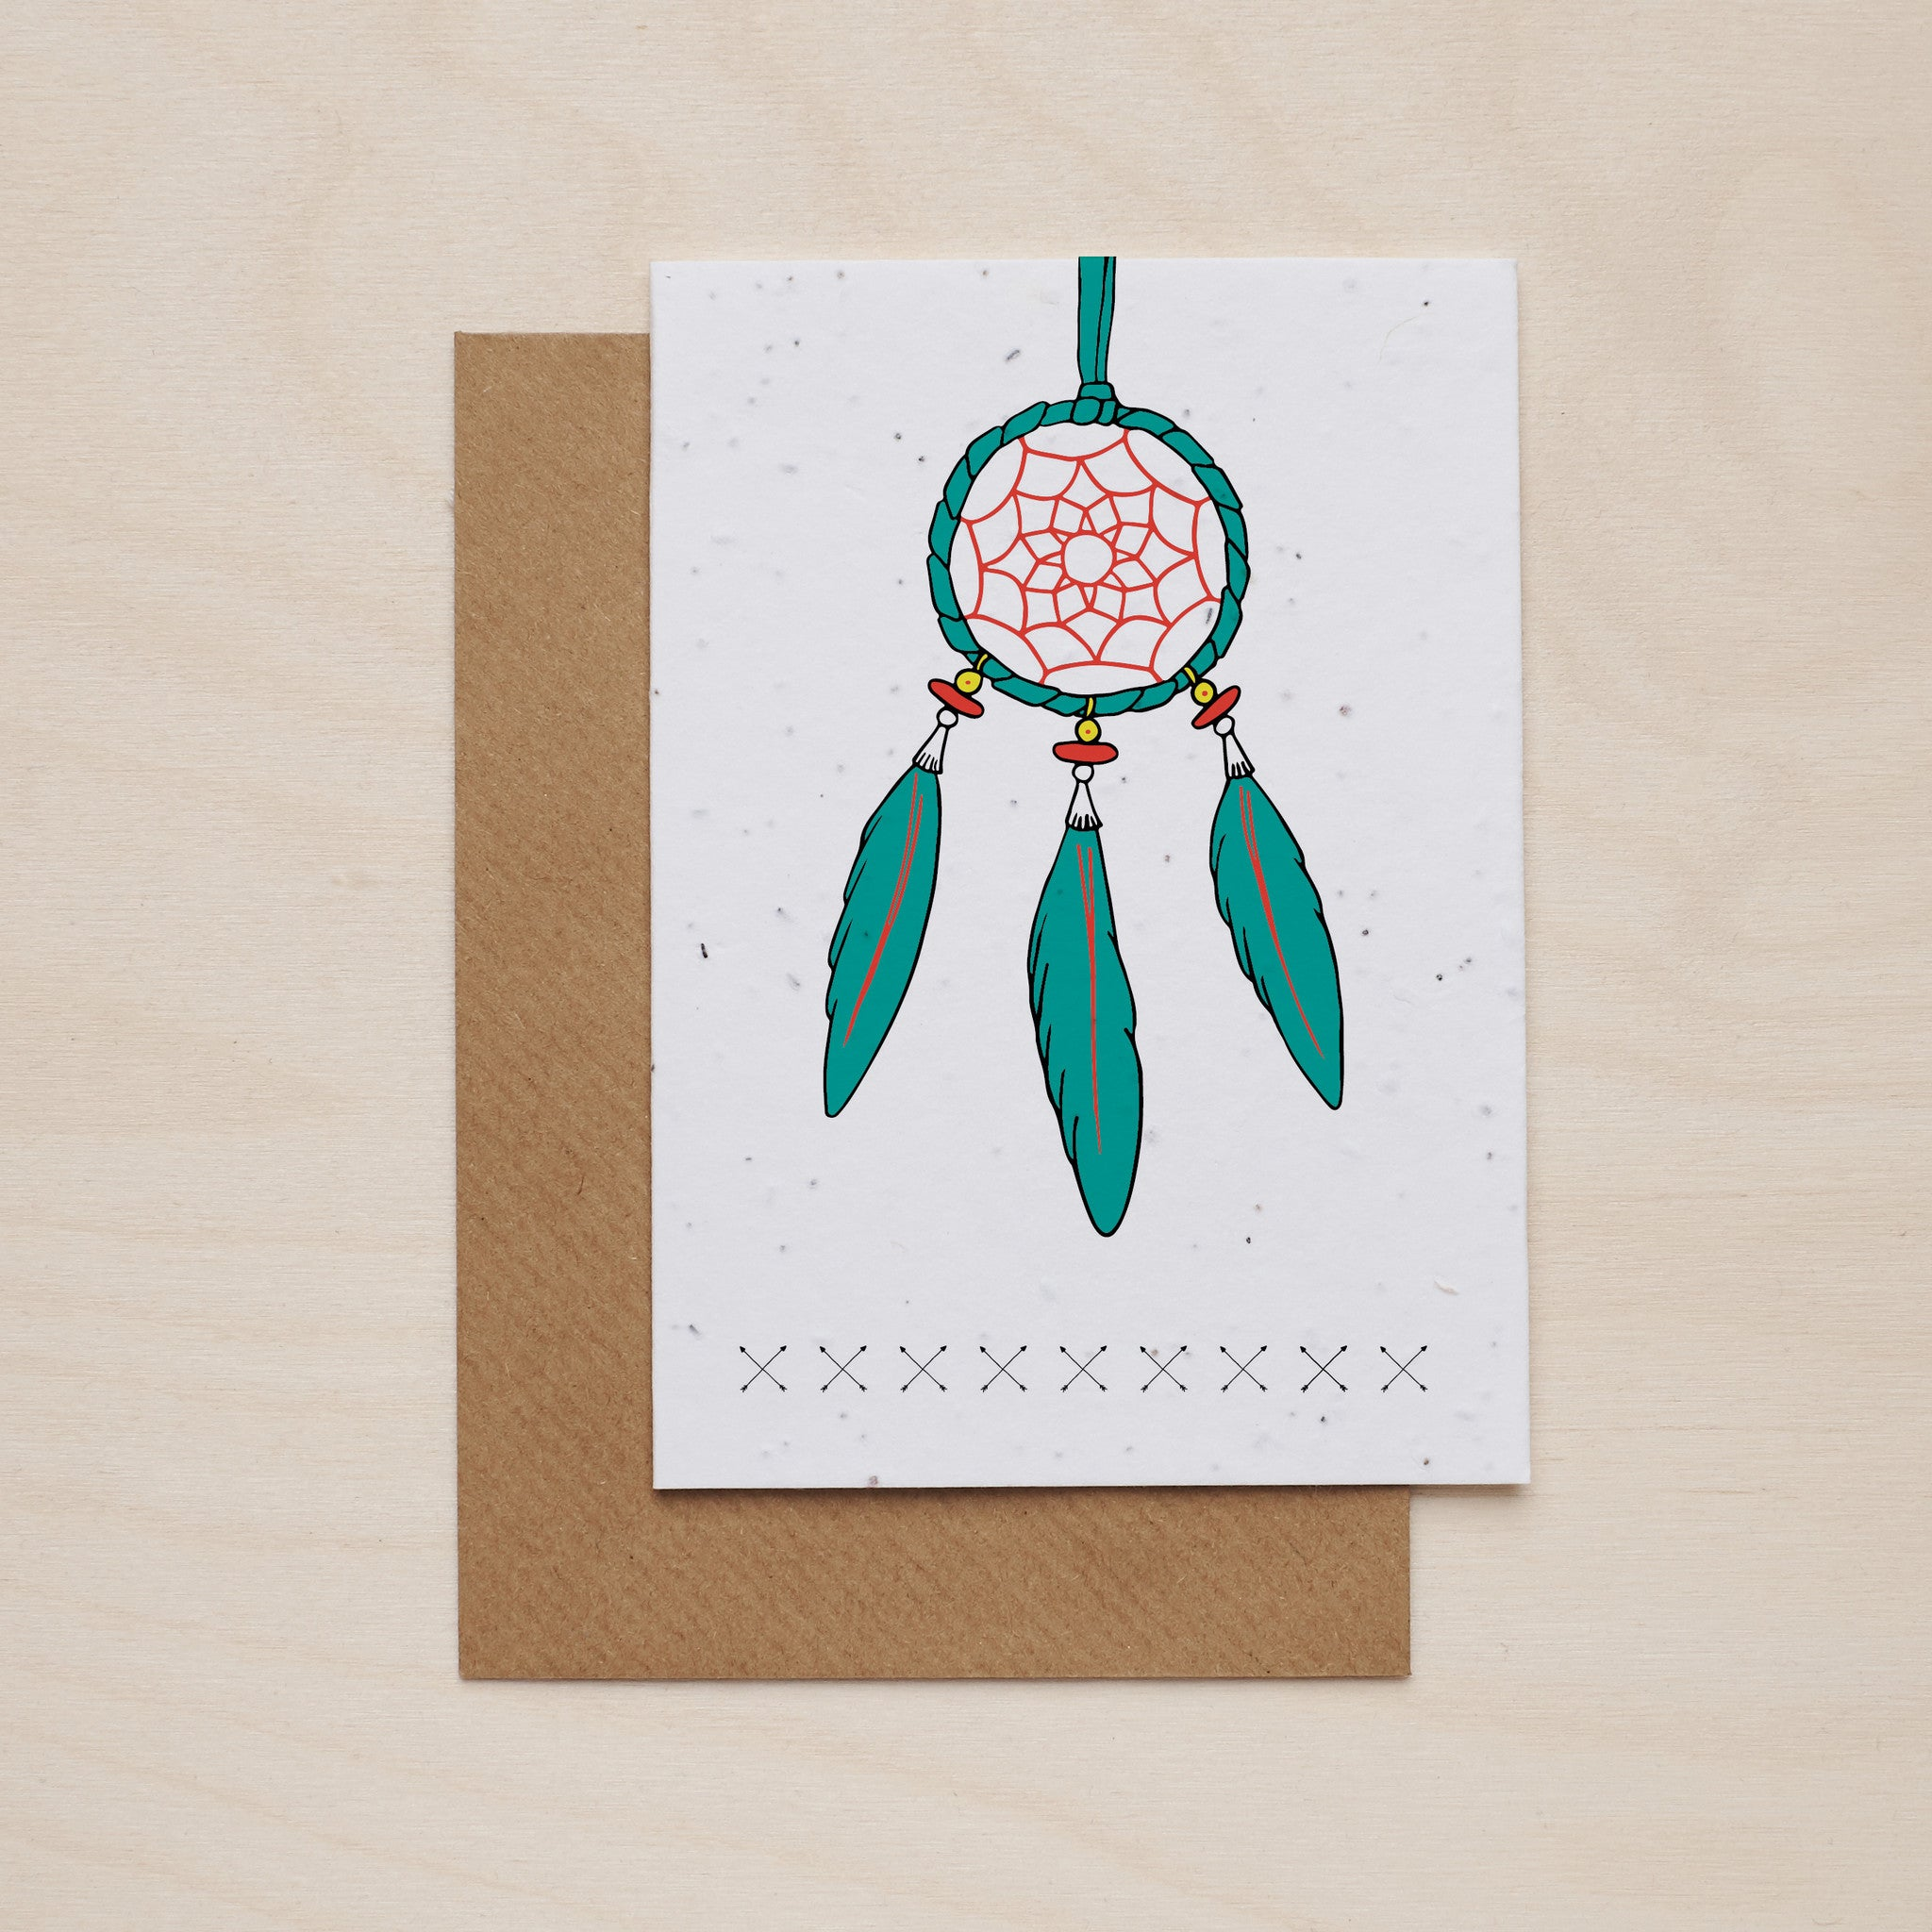 Dream catcher - Seeded card - Oolaladesign